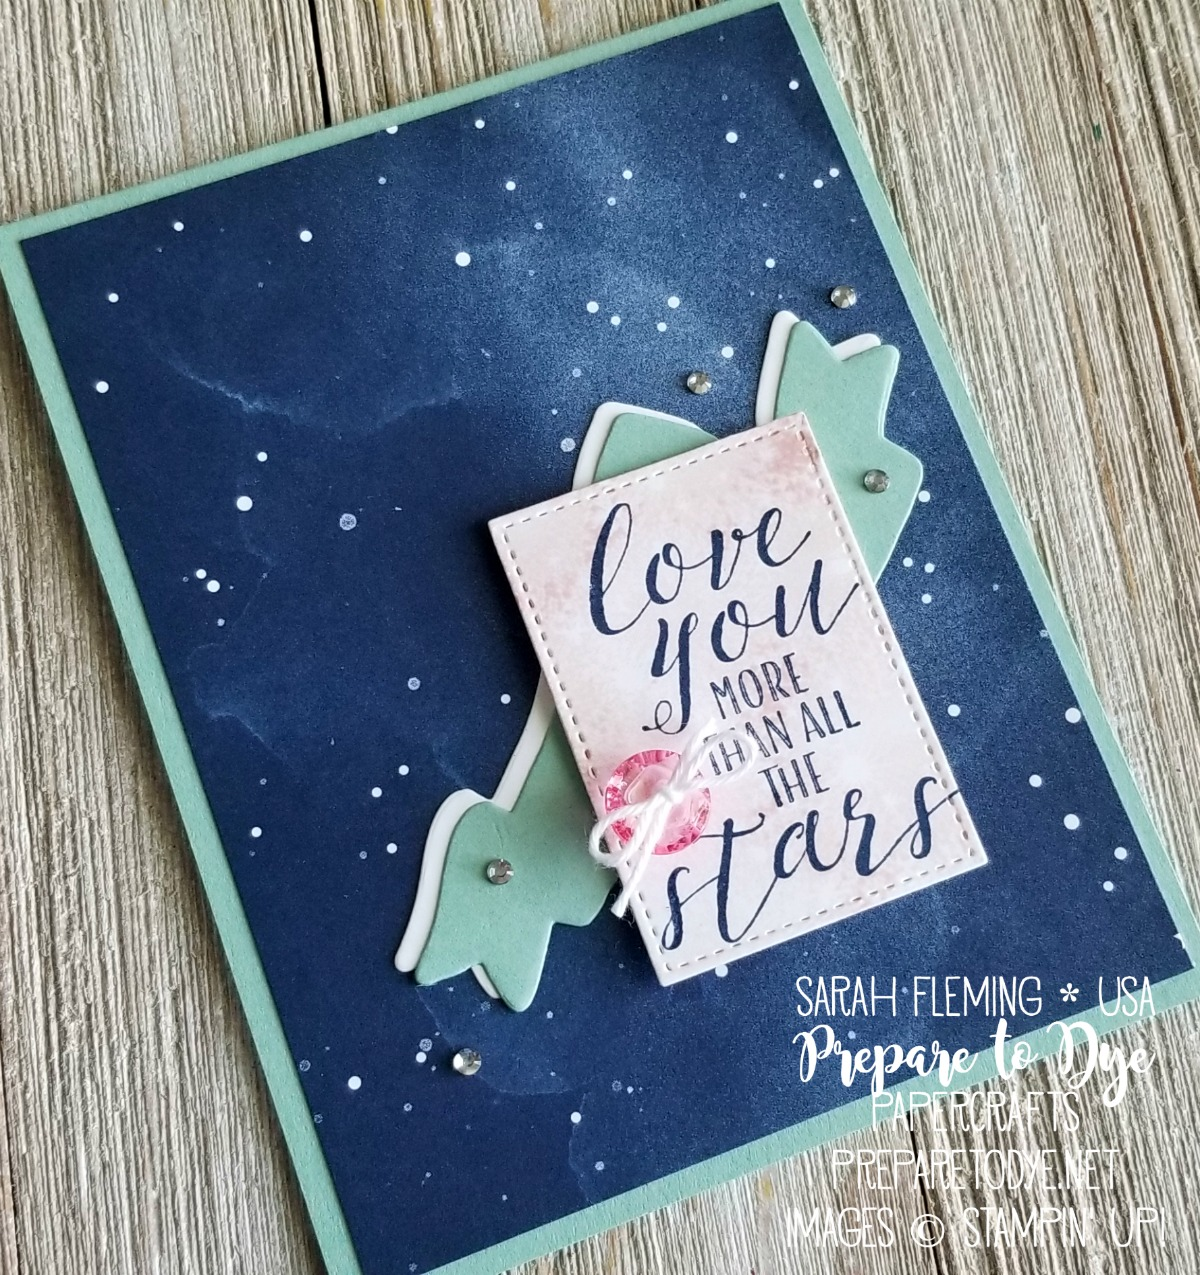 Stampin' Up! Little Twinkle and Bokeh Dots stamp sets with Twinkle Twinkle paper, Stitched Shapes framelits, Bunch of Banners framelits, Tinted Faceted Gems - Sarah Fleming - Prepare to Dye Papercrafts